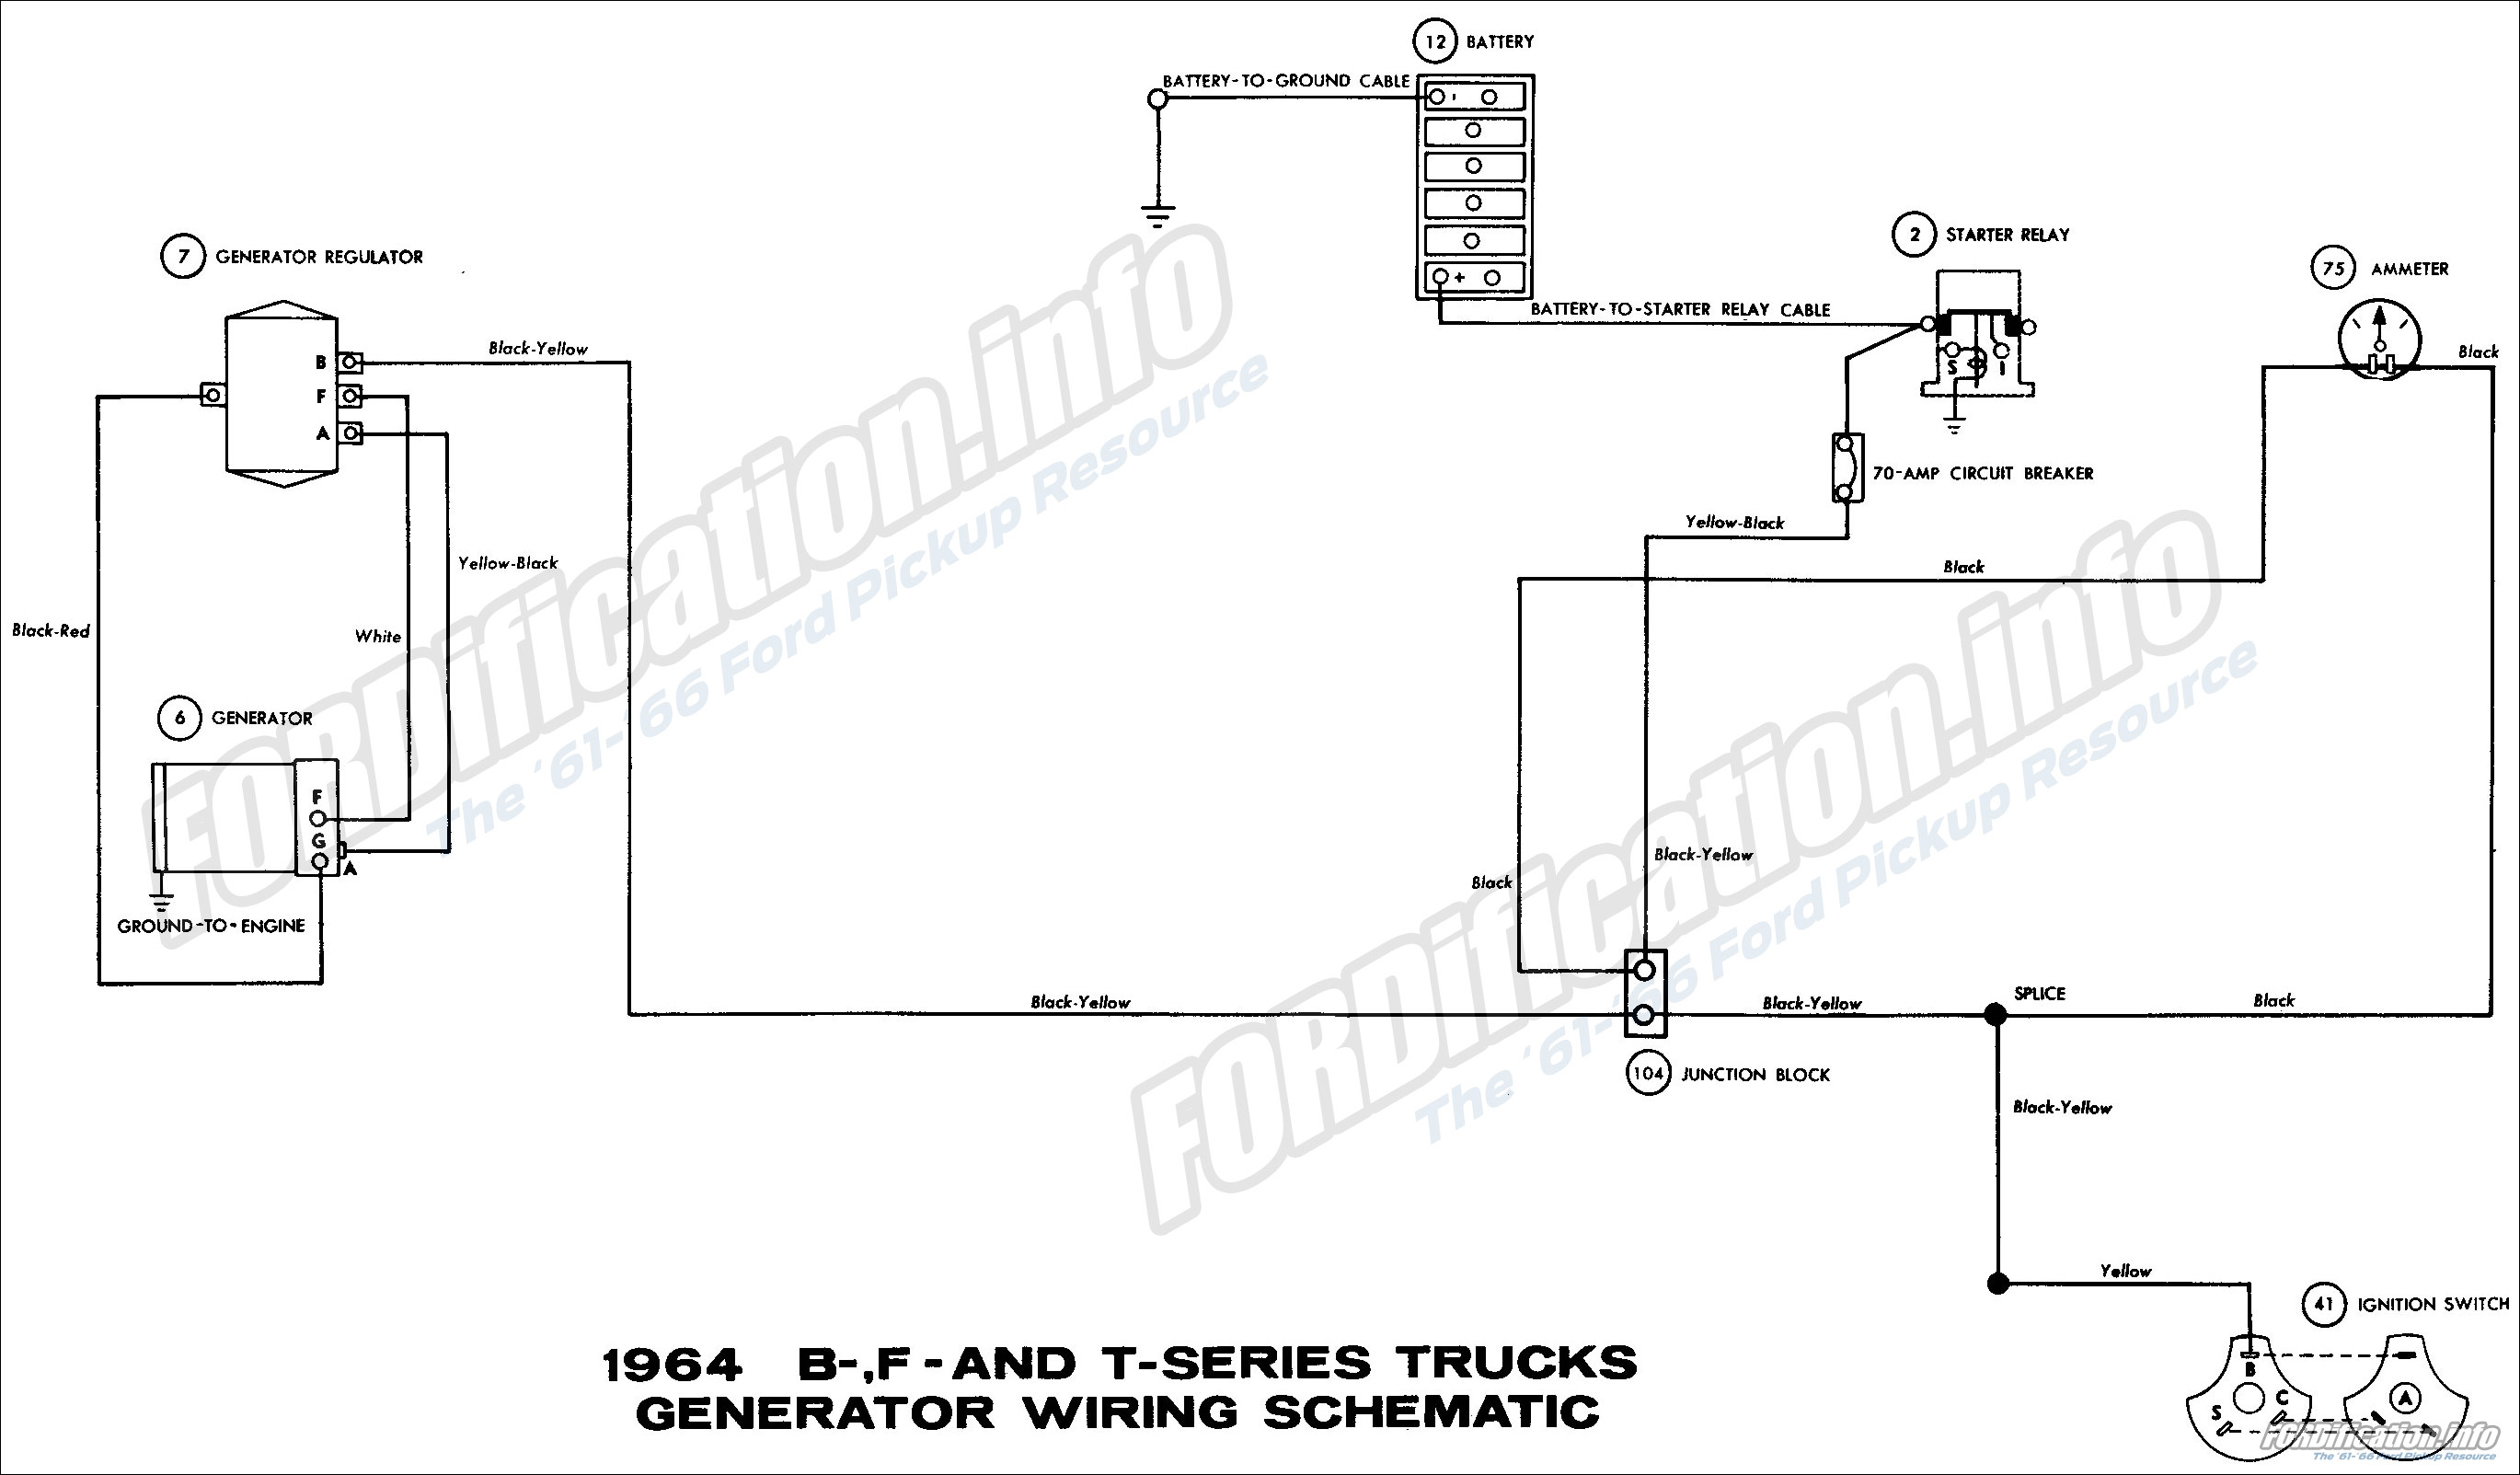 1964 B-, F- and T-series Truck Generator Wiring Schematic